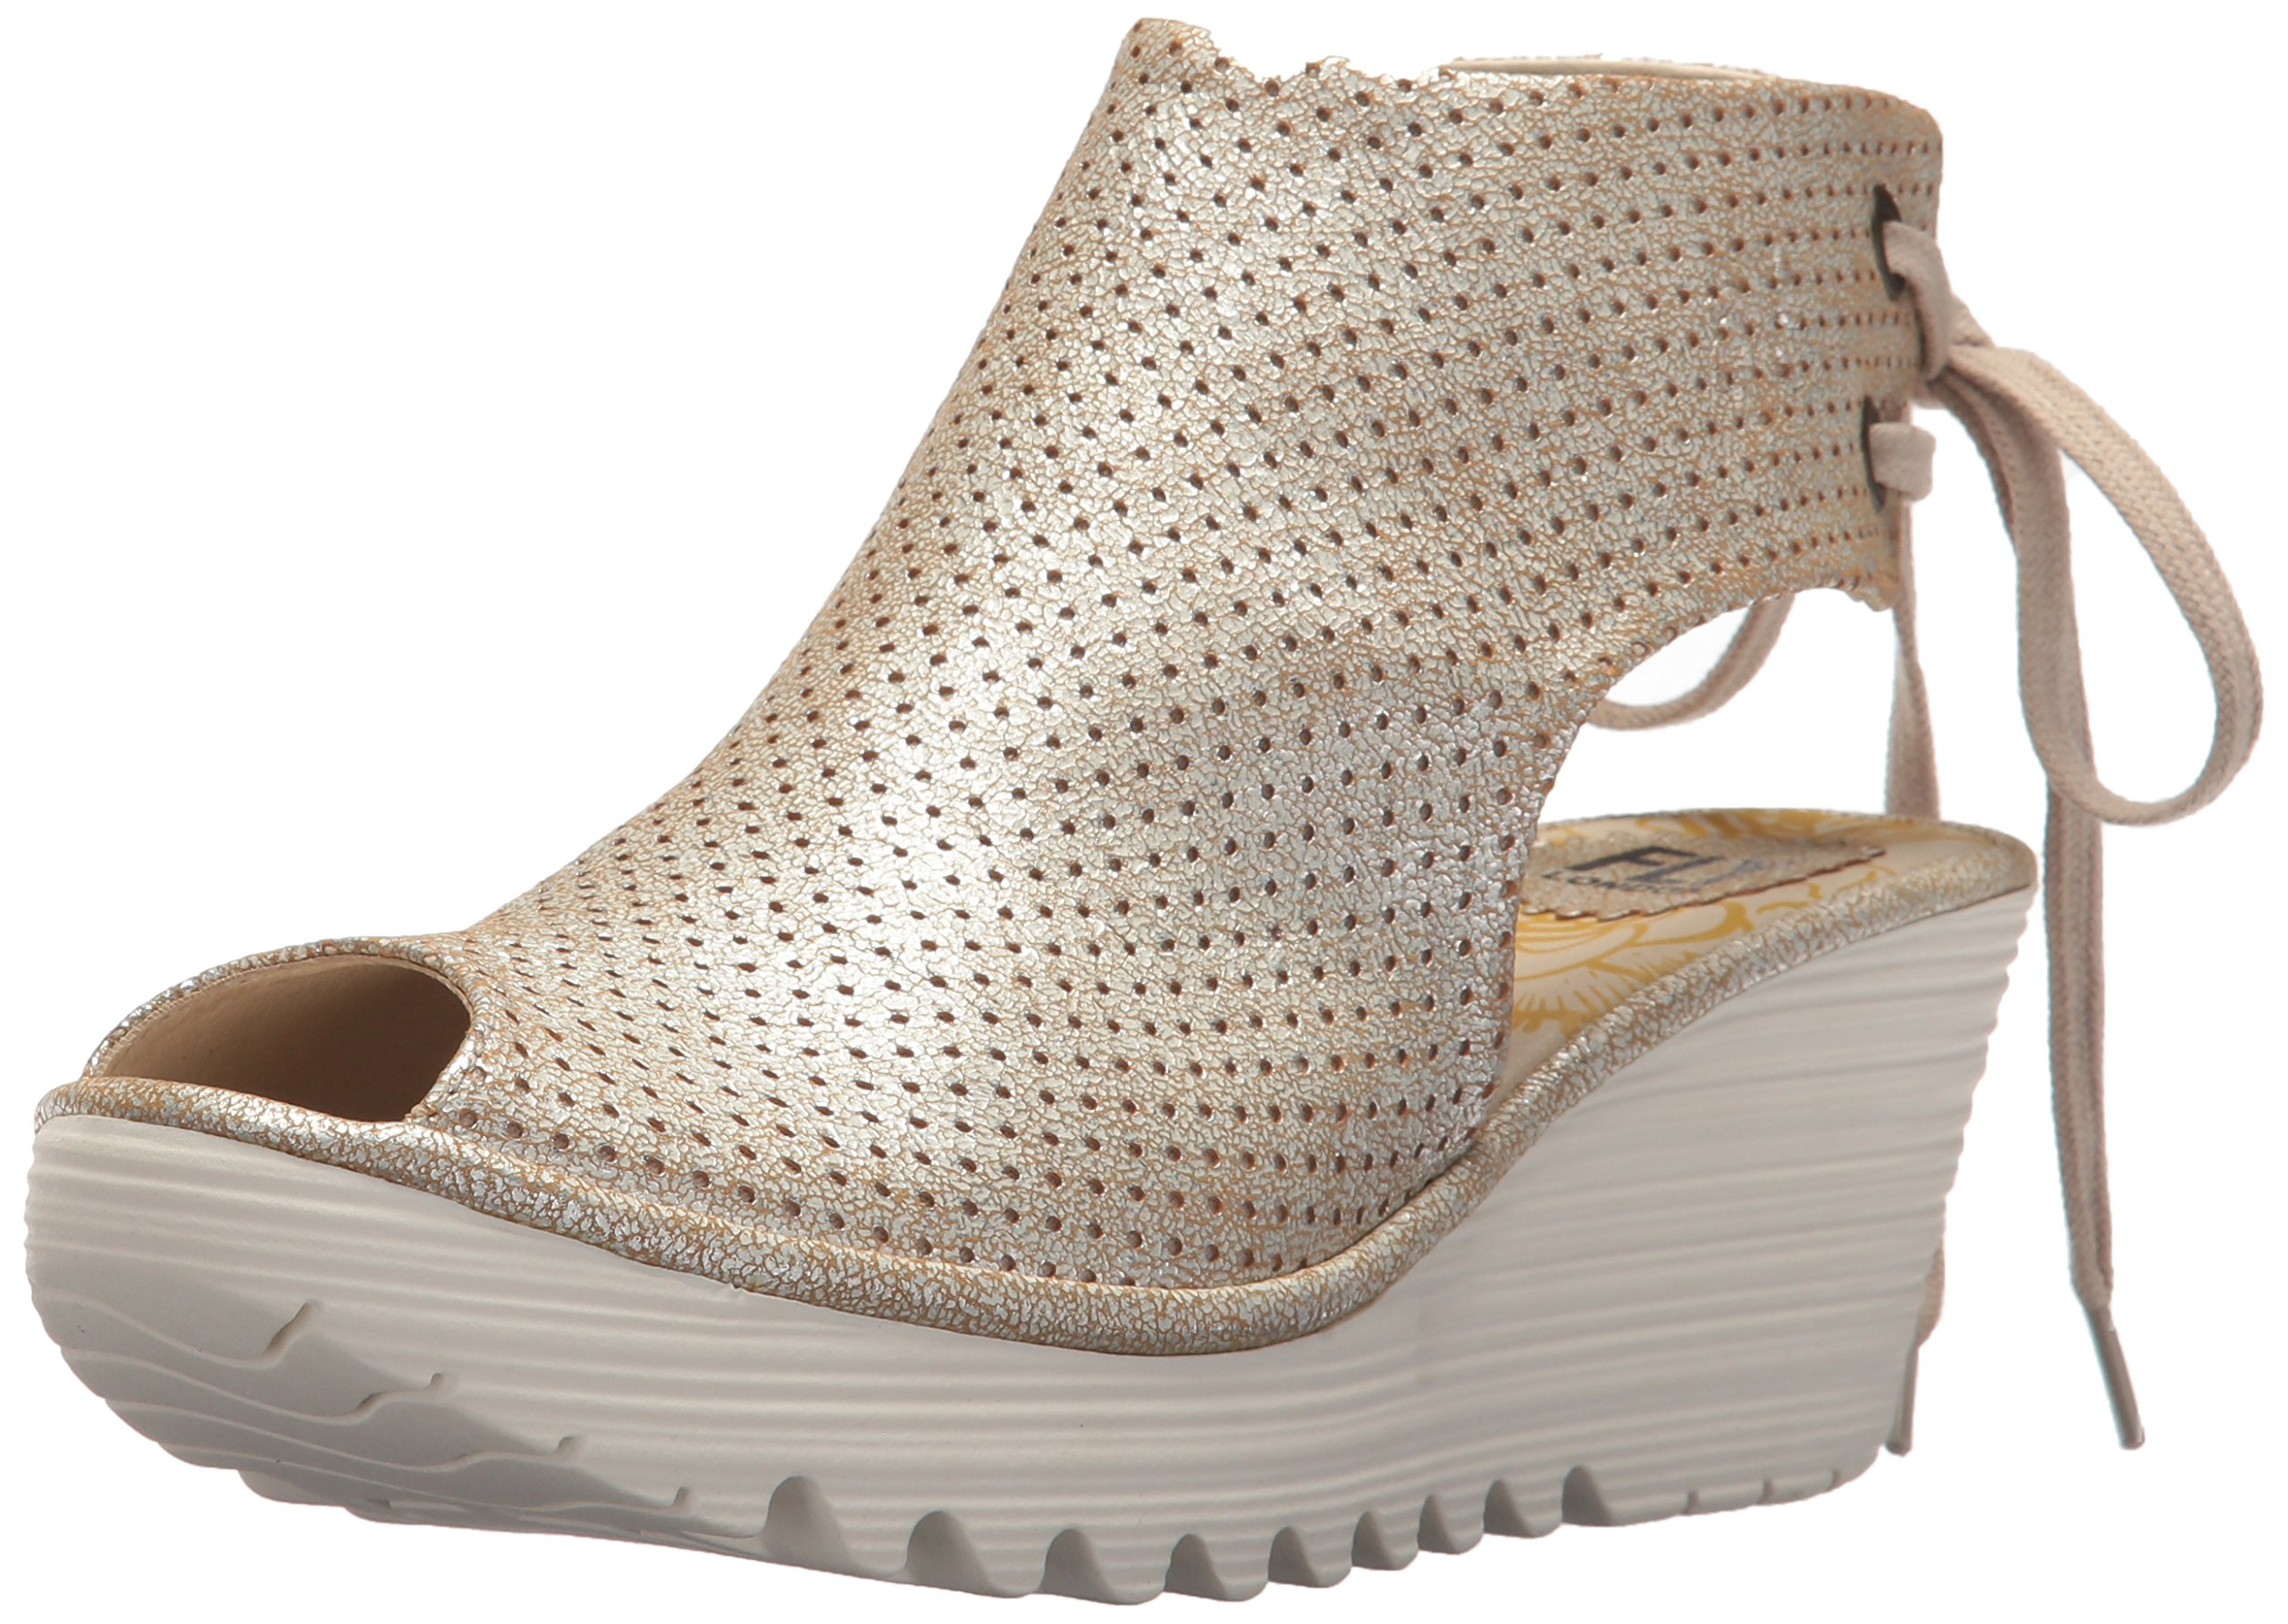 FLY London Women's Ypul799fly Wedge Sandal, Pearl Cool, 41 M EU (10-10.5 US)